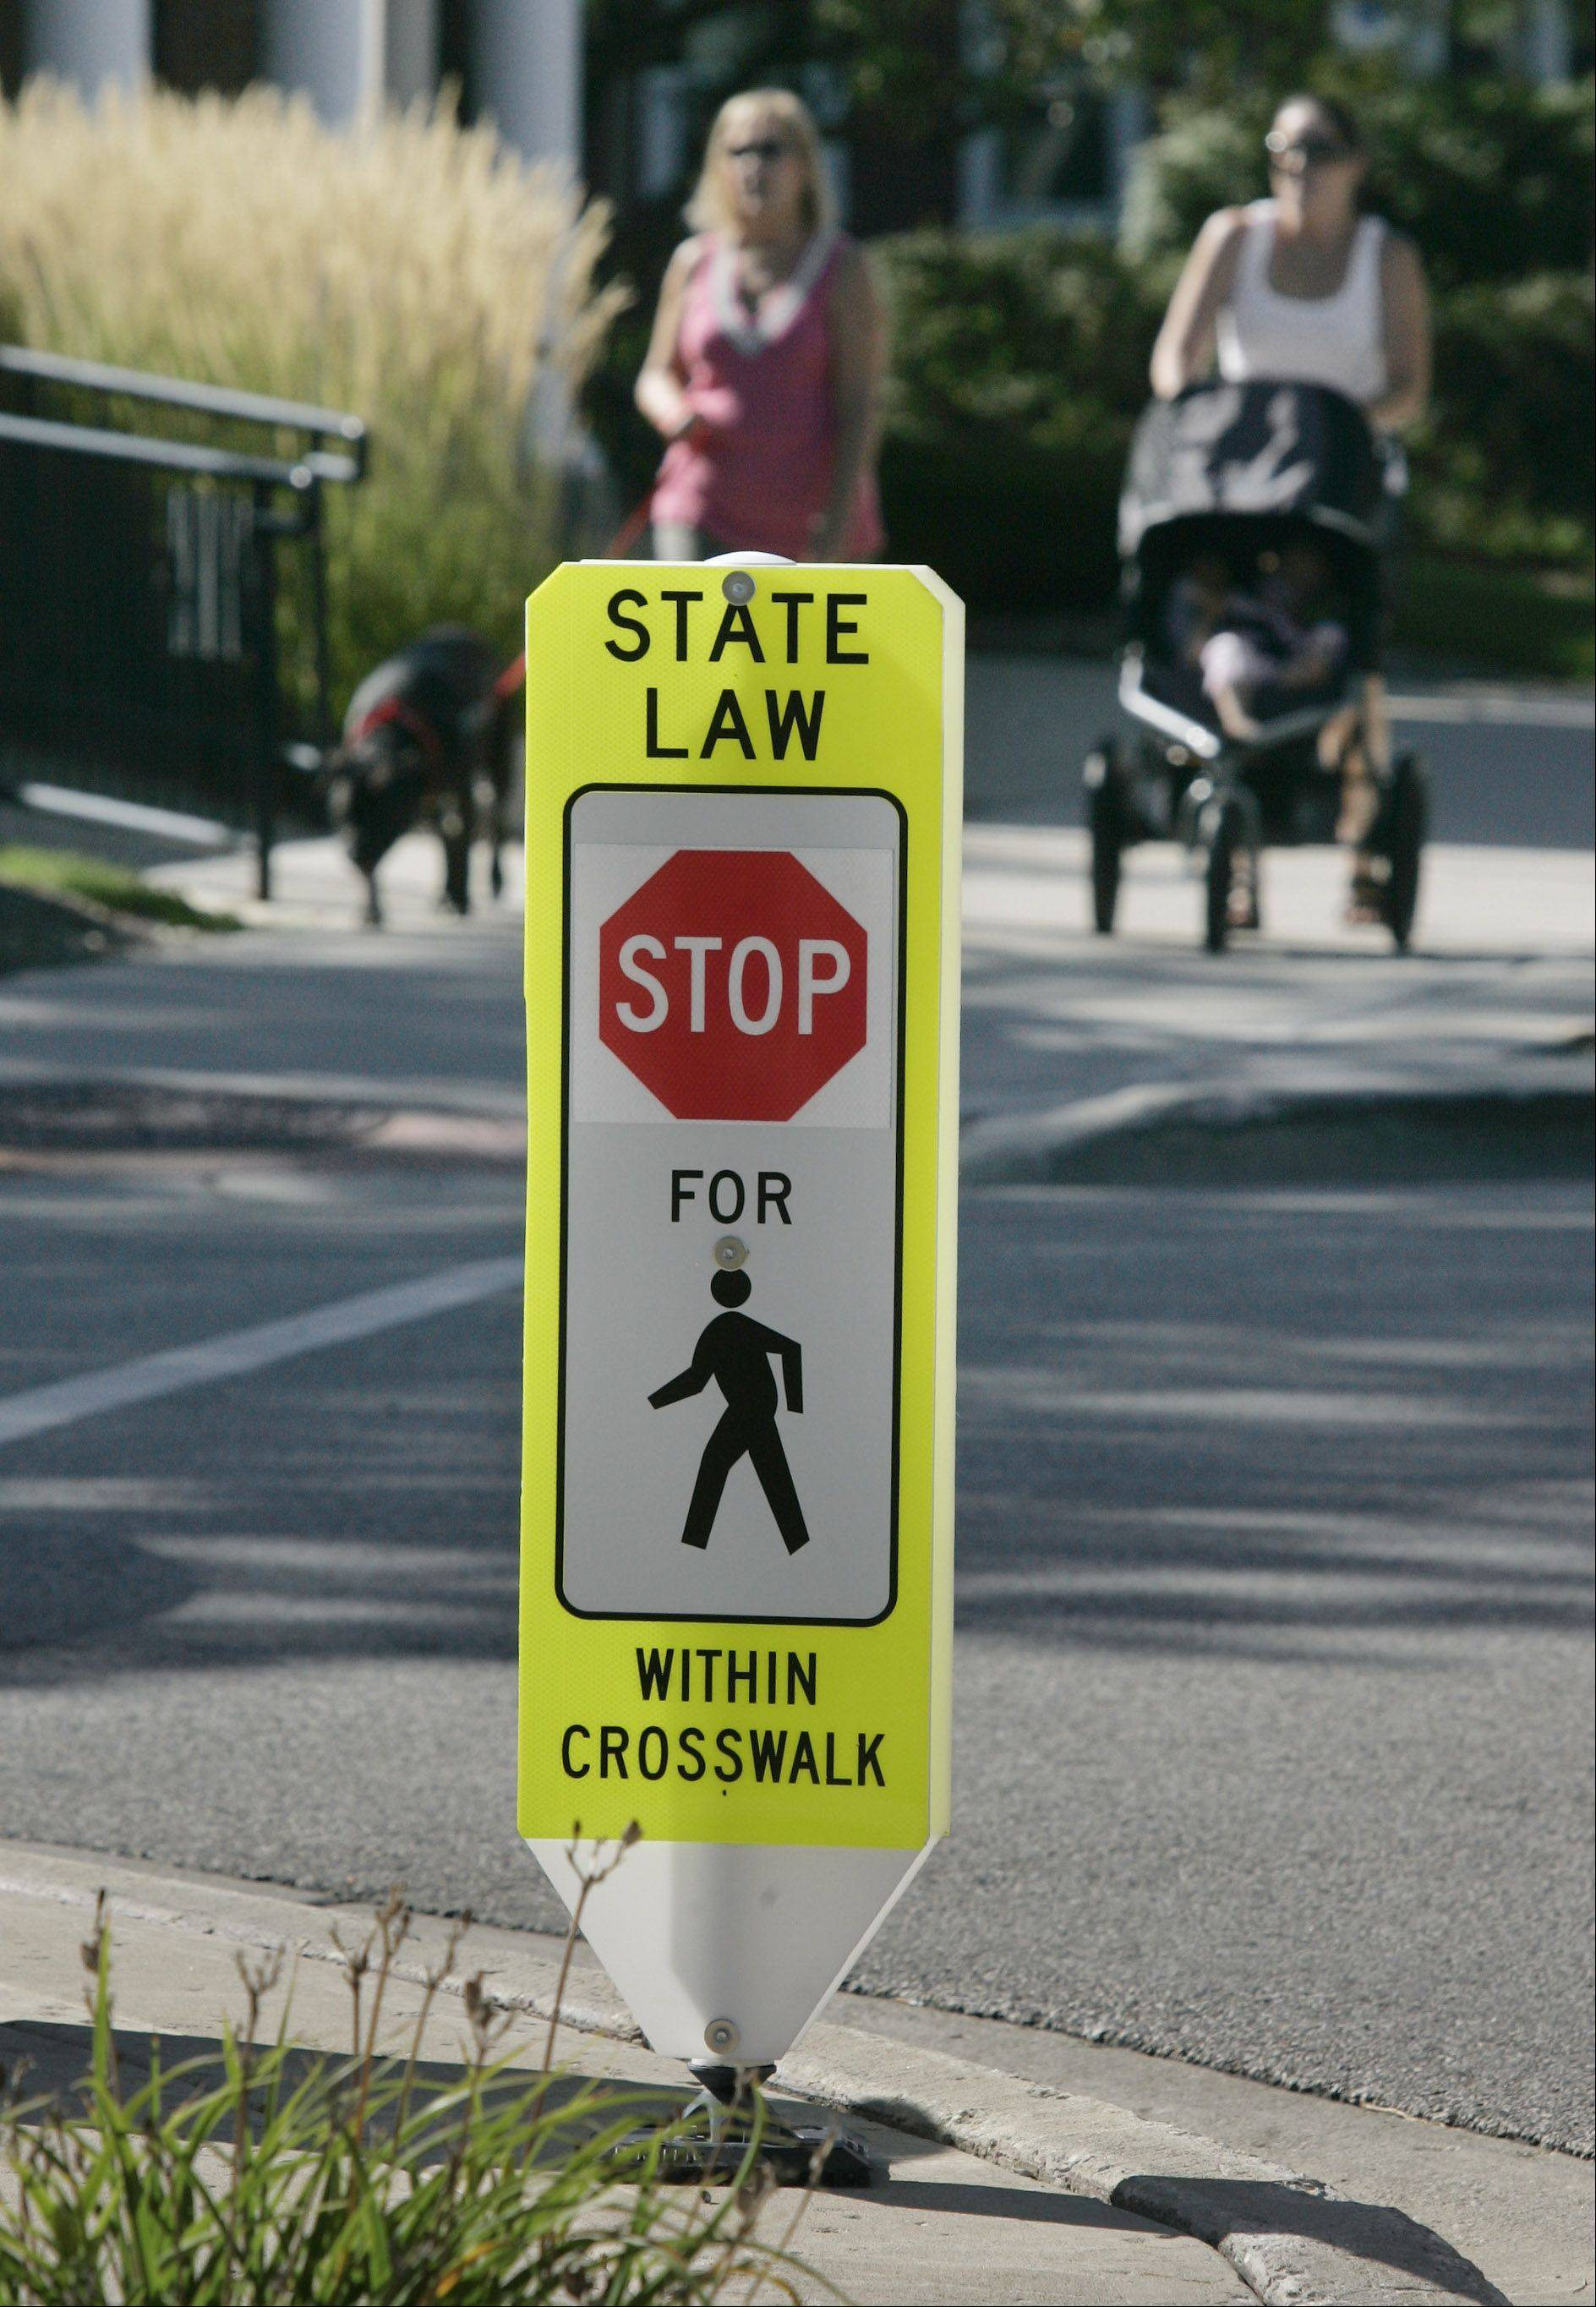 Drivers are now informed to stop -- not just yield -- for pedestrians on Main Street in downtown Wauconda. The sign reflects the state's stricter crosswalk law enacted a little more than a year ago.